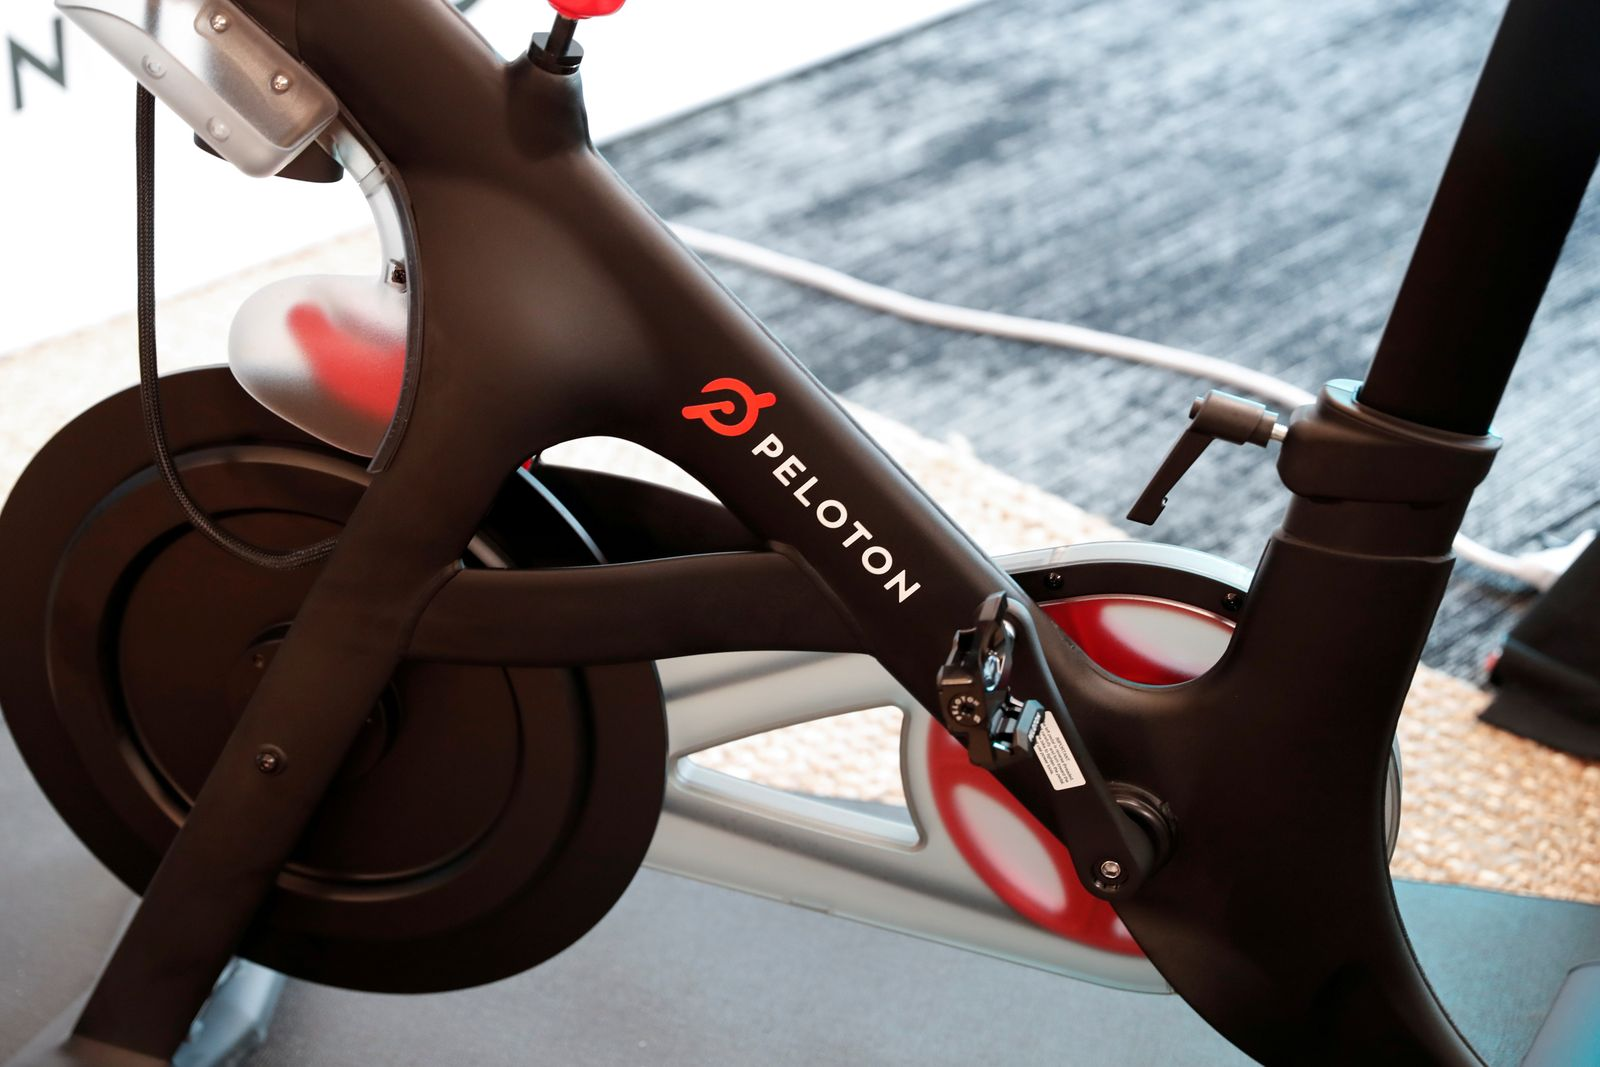 FILE PHOTO: A Peloton exercise bike is seen after the ringing of the opening bell for the company's IPO at the Nasdaq Market site in New York City